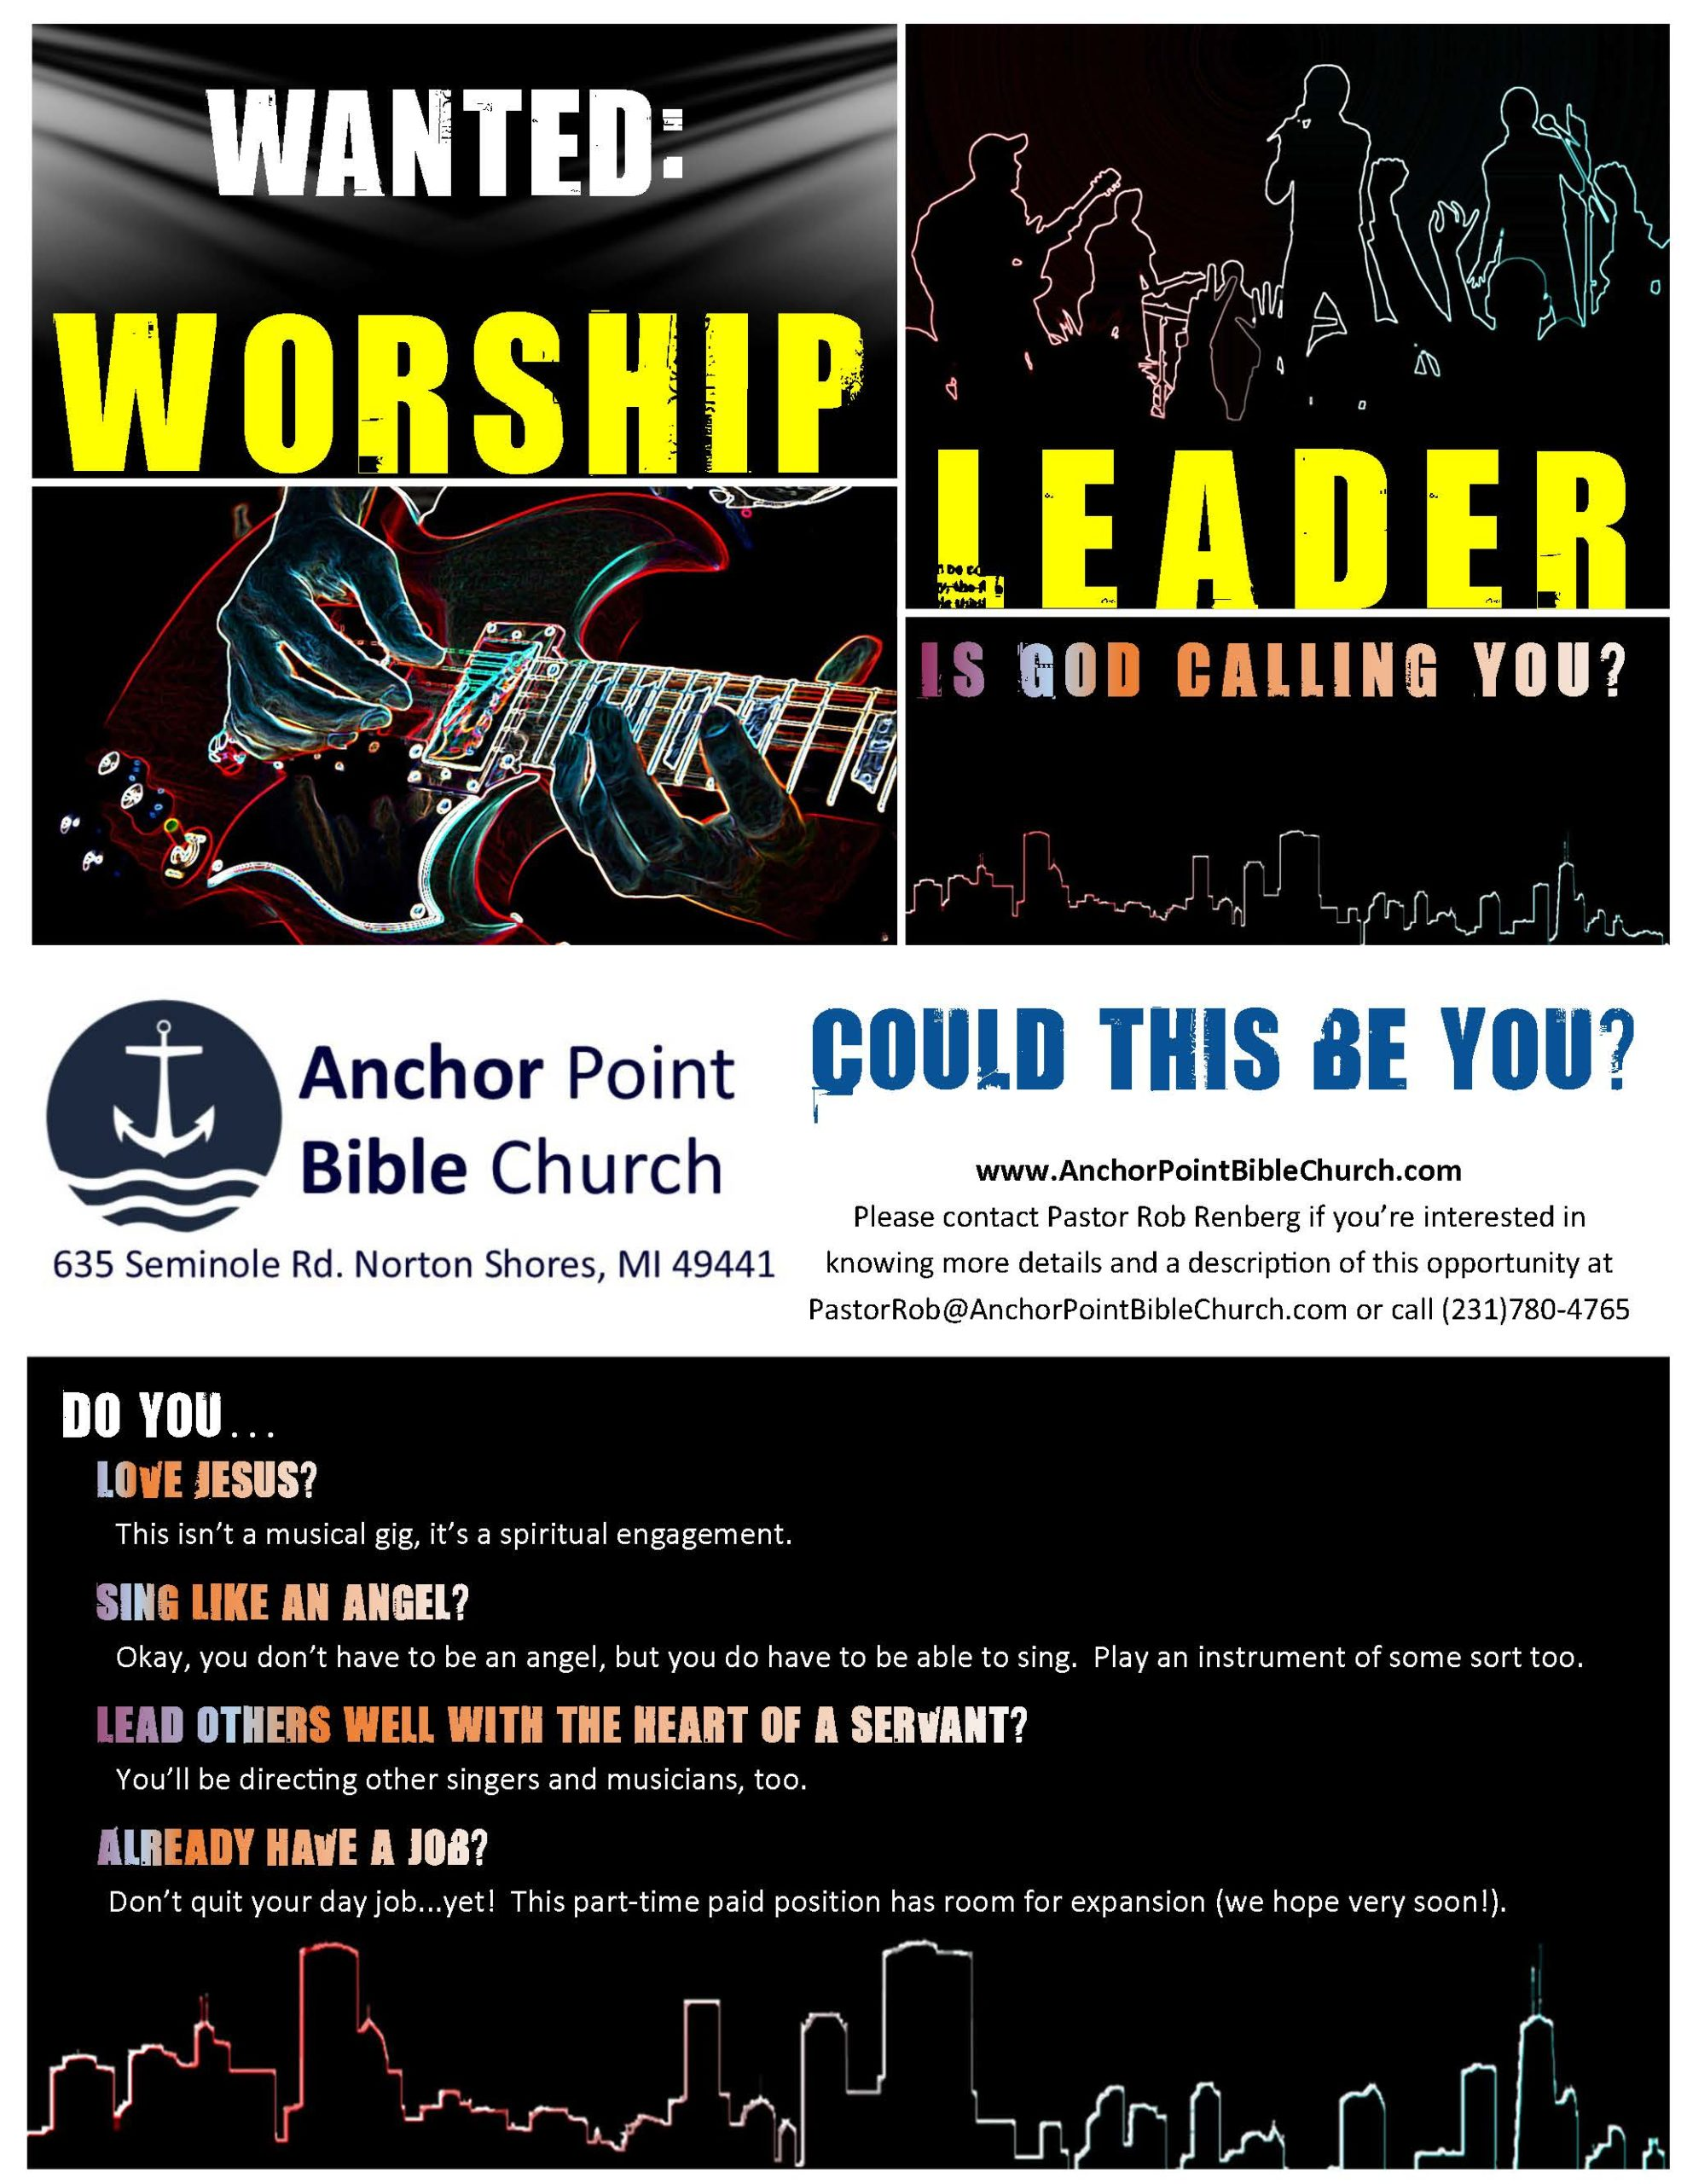 Worship Leader Job Opportunity